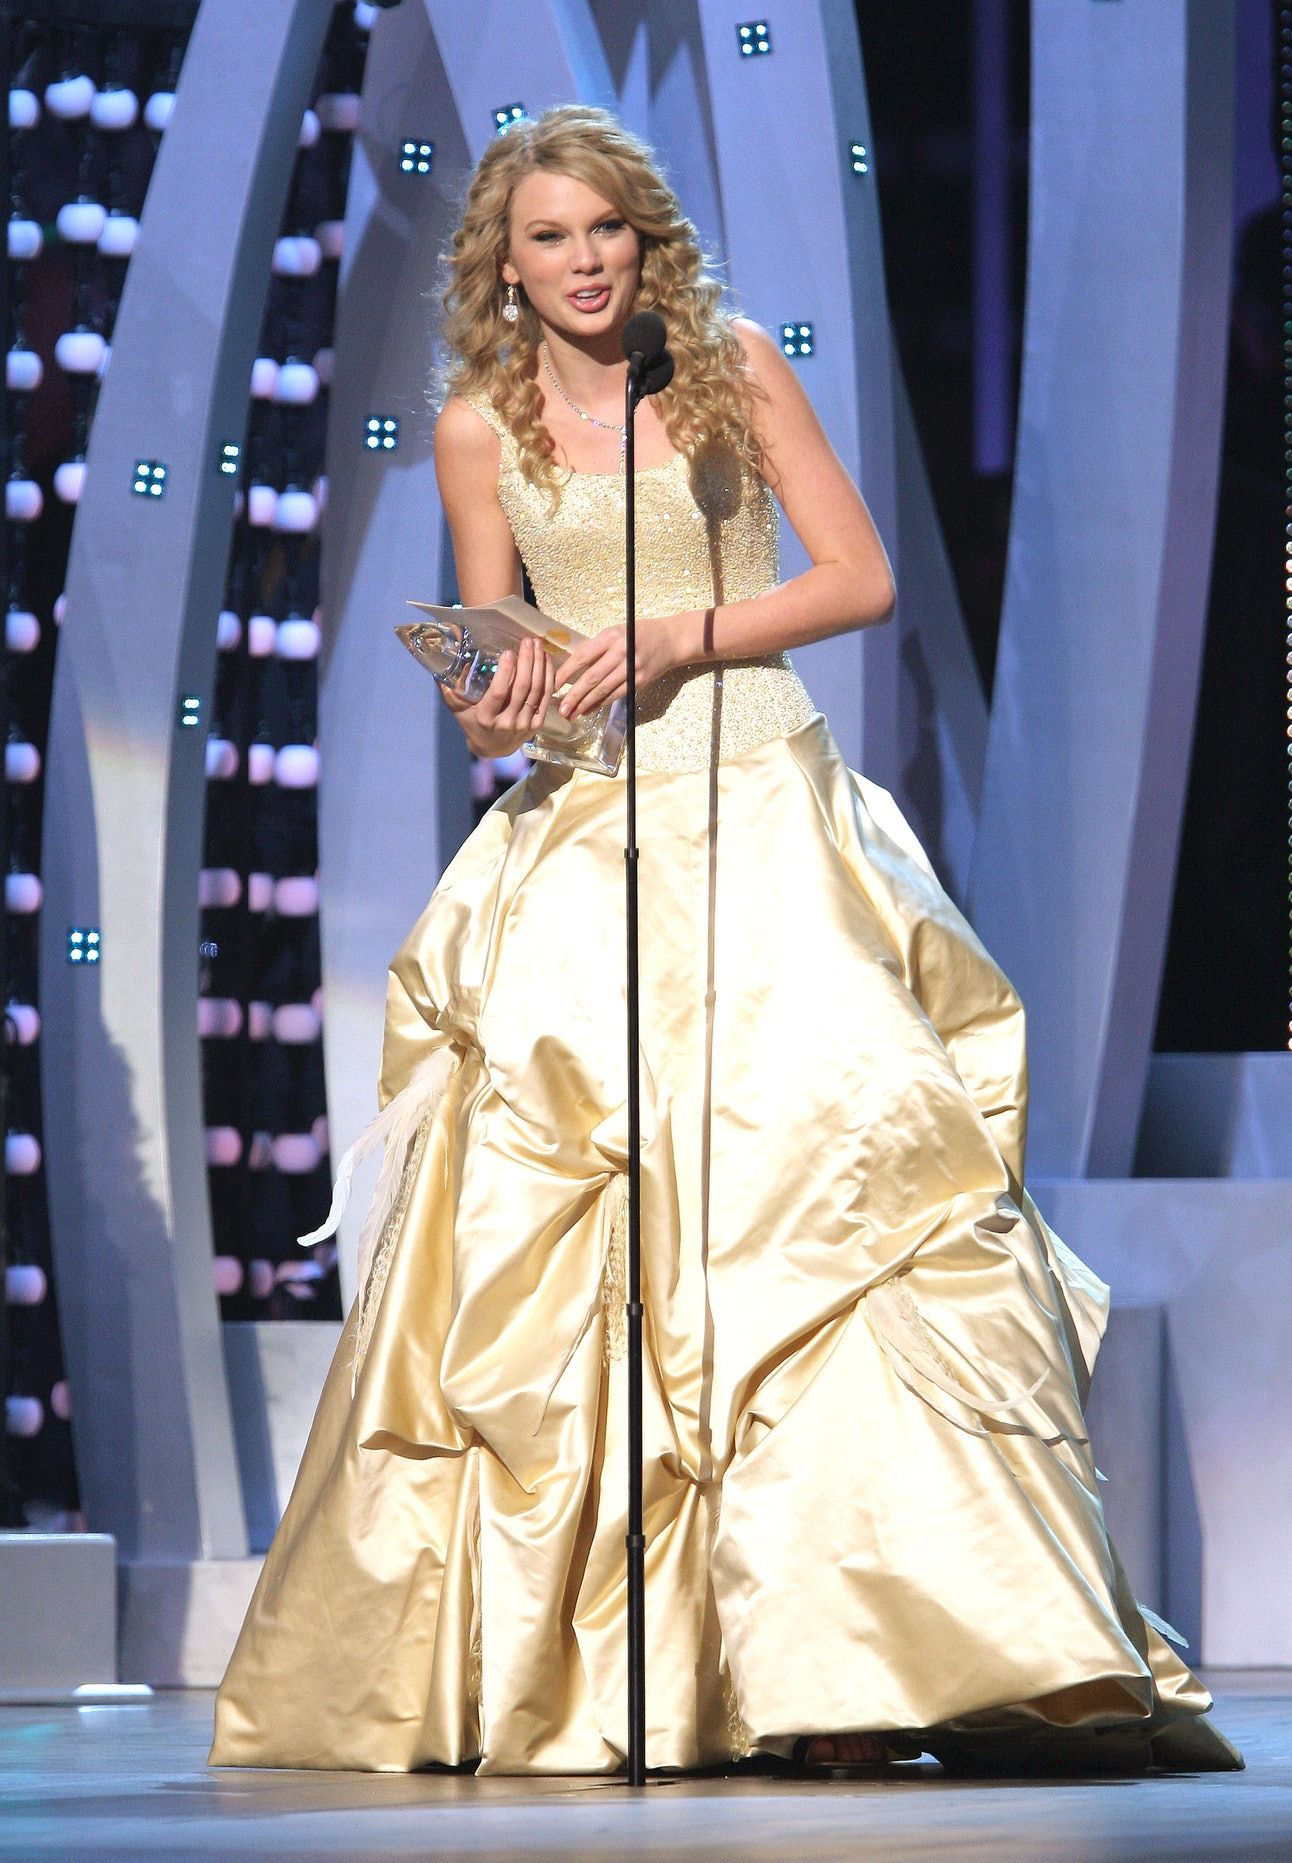 9 Terrible Prom Dress Trends From The Early 2000s That We Thought Were The Coolest Photos Prom Dress Trends 2000s Prom Dress Taylor Swift 2006 [ 1863 x 1292 Pixel ]